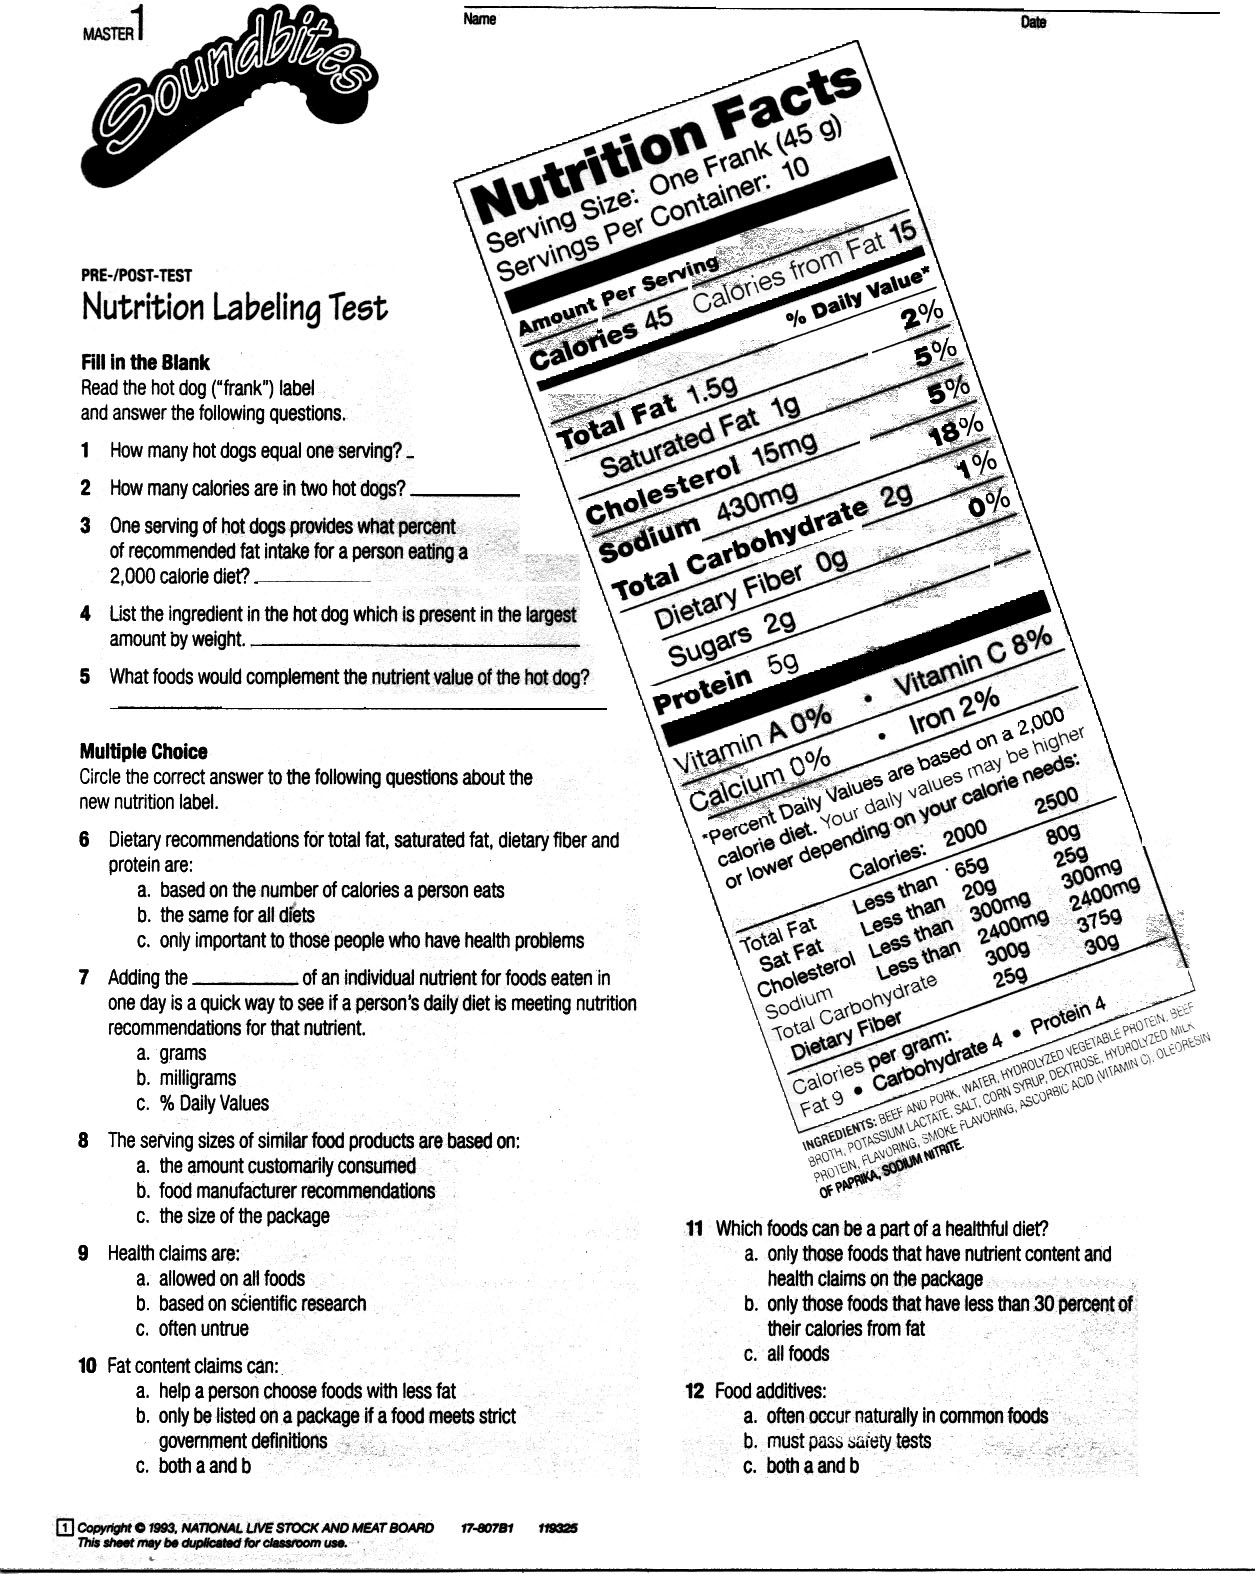 12 Best Images of Printable Nutrition Crossword Puzzle